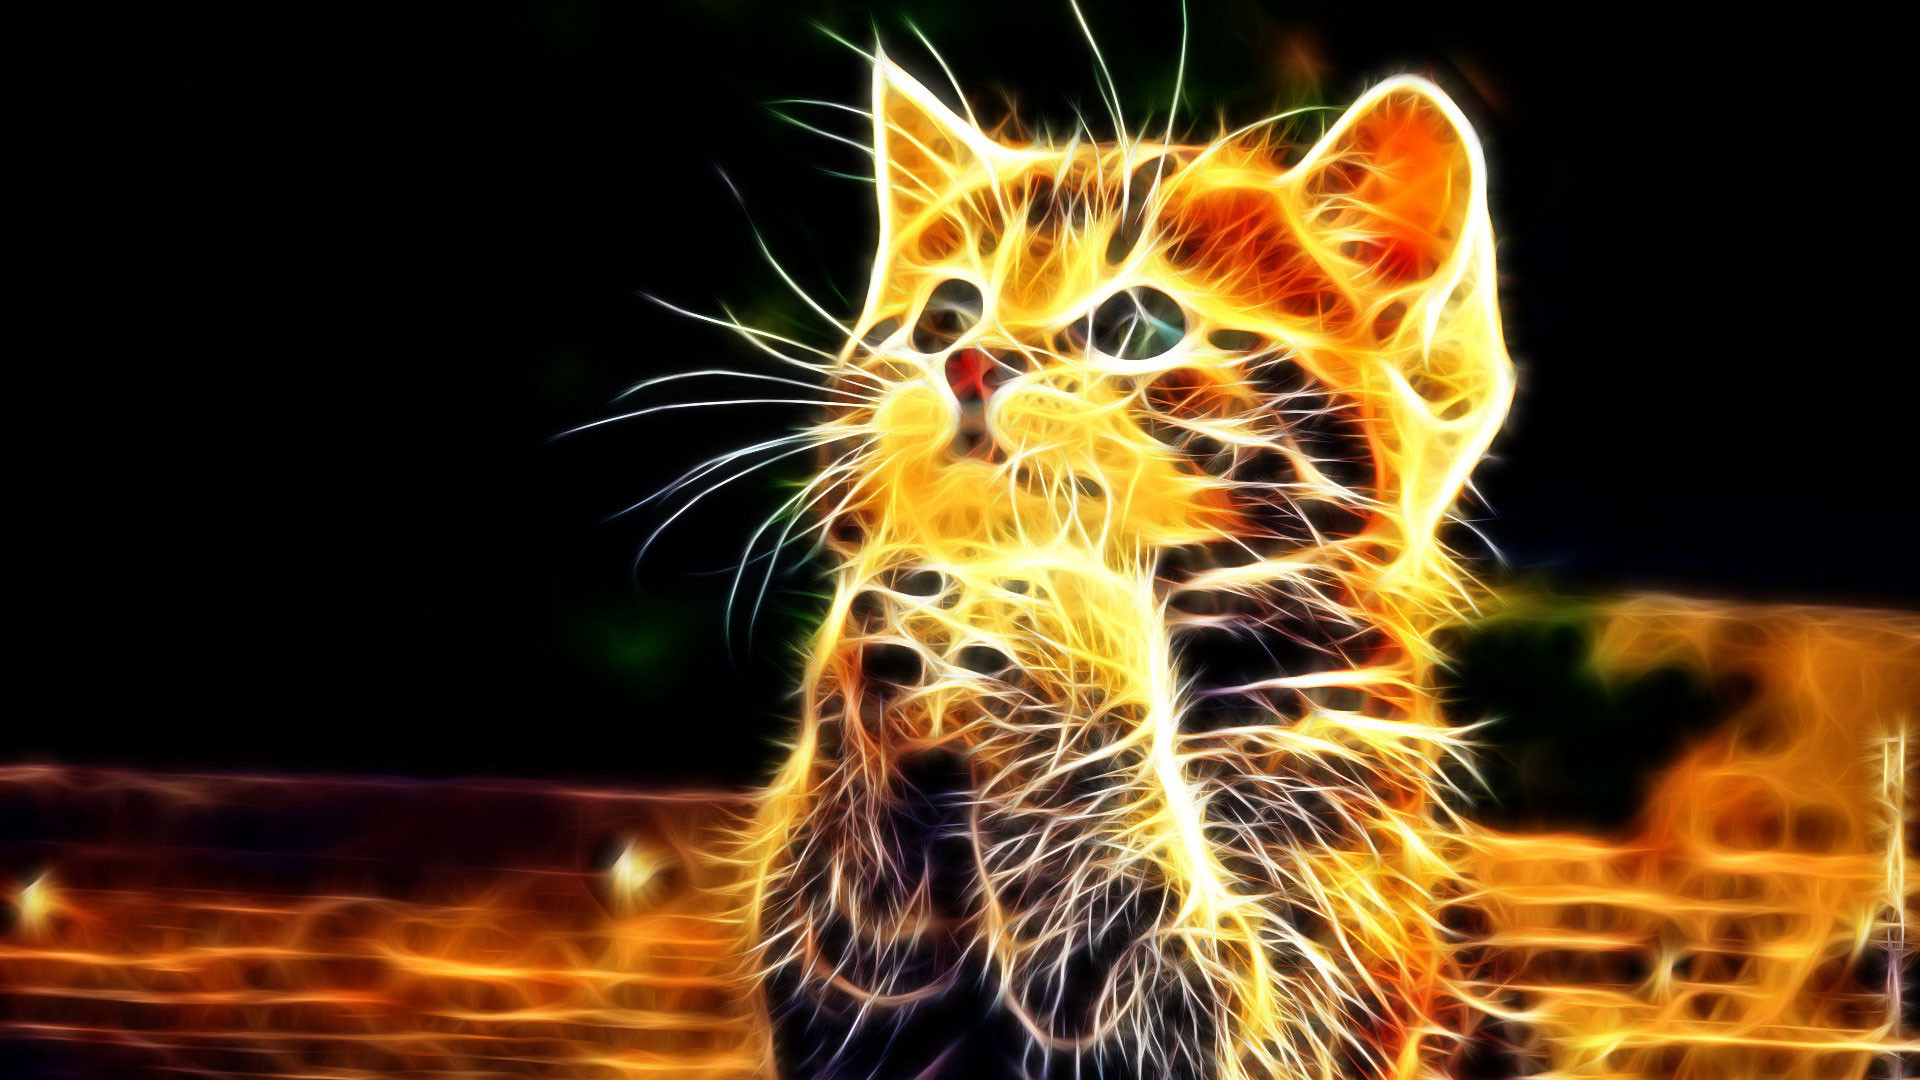 1920x1080 hd pics photos abstract 3d little cat n fire wallpaper